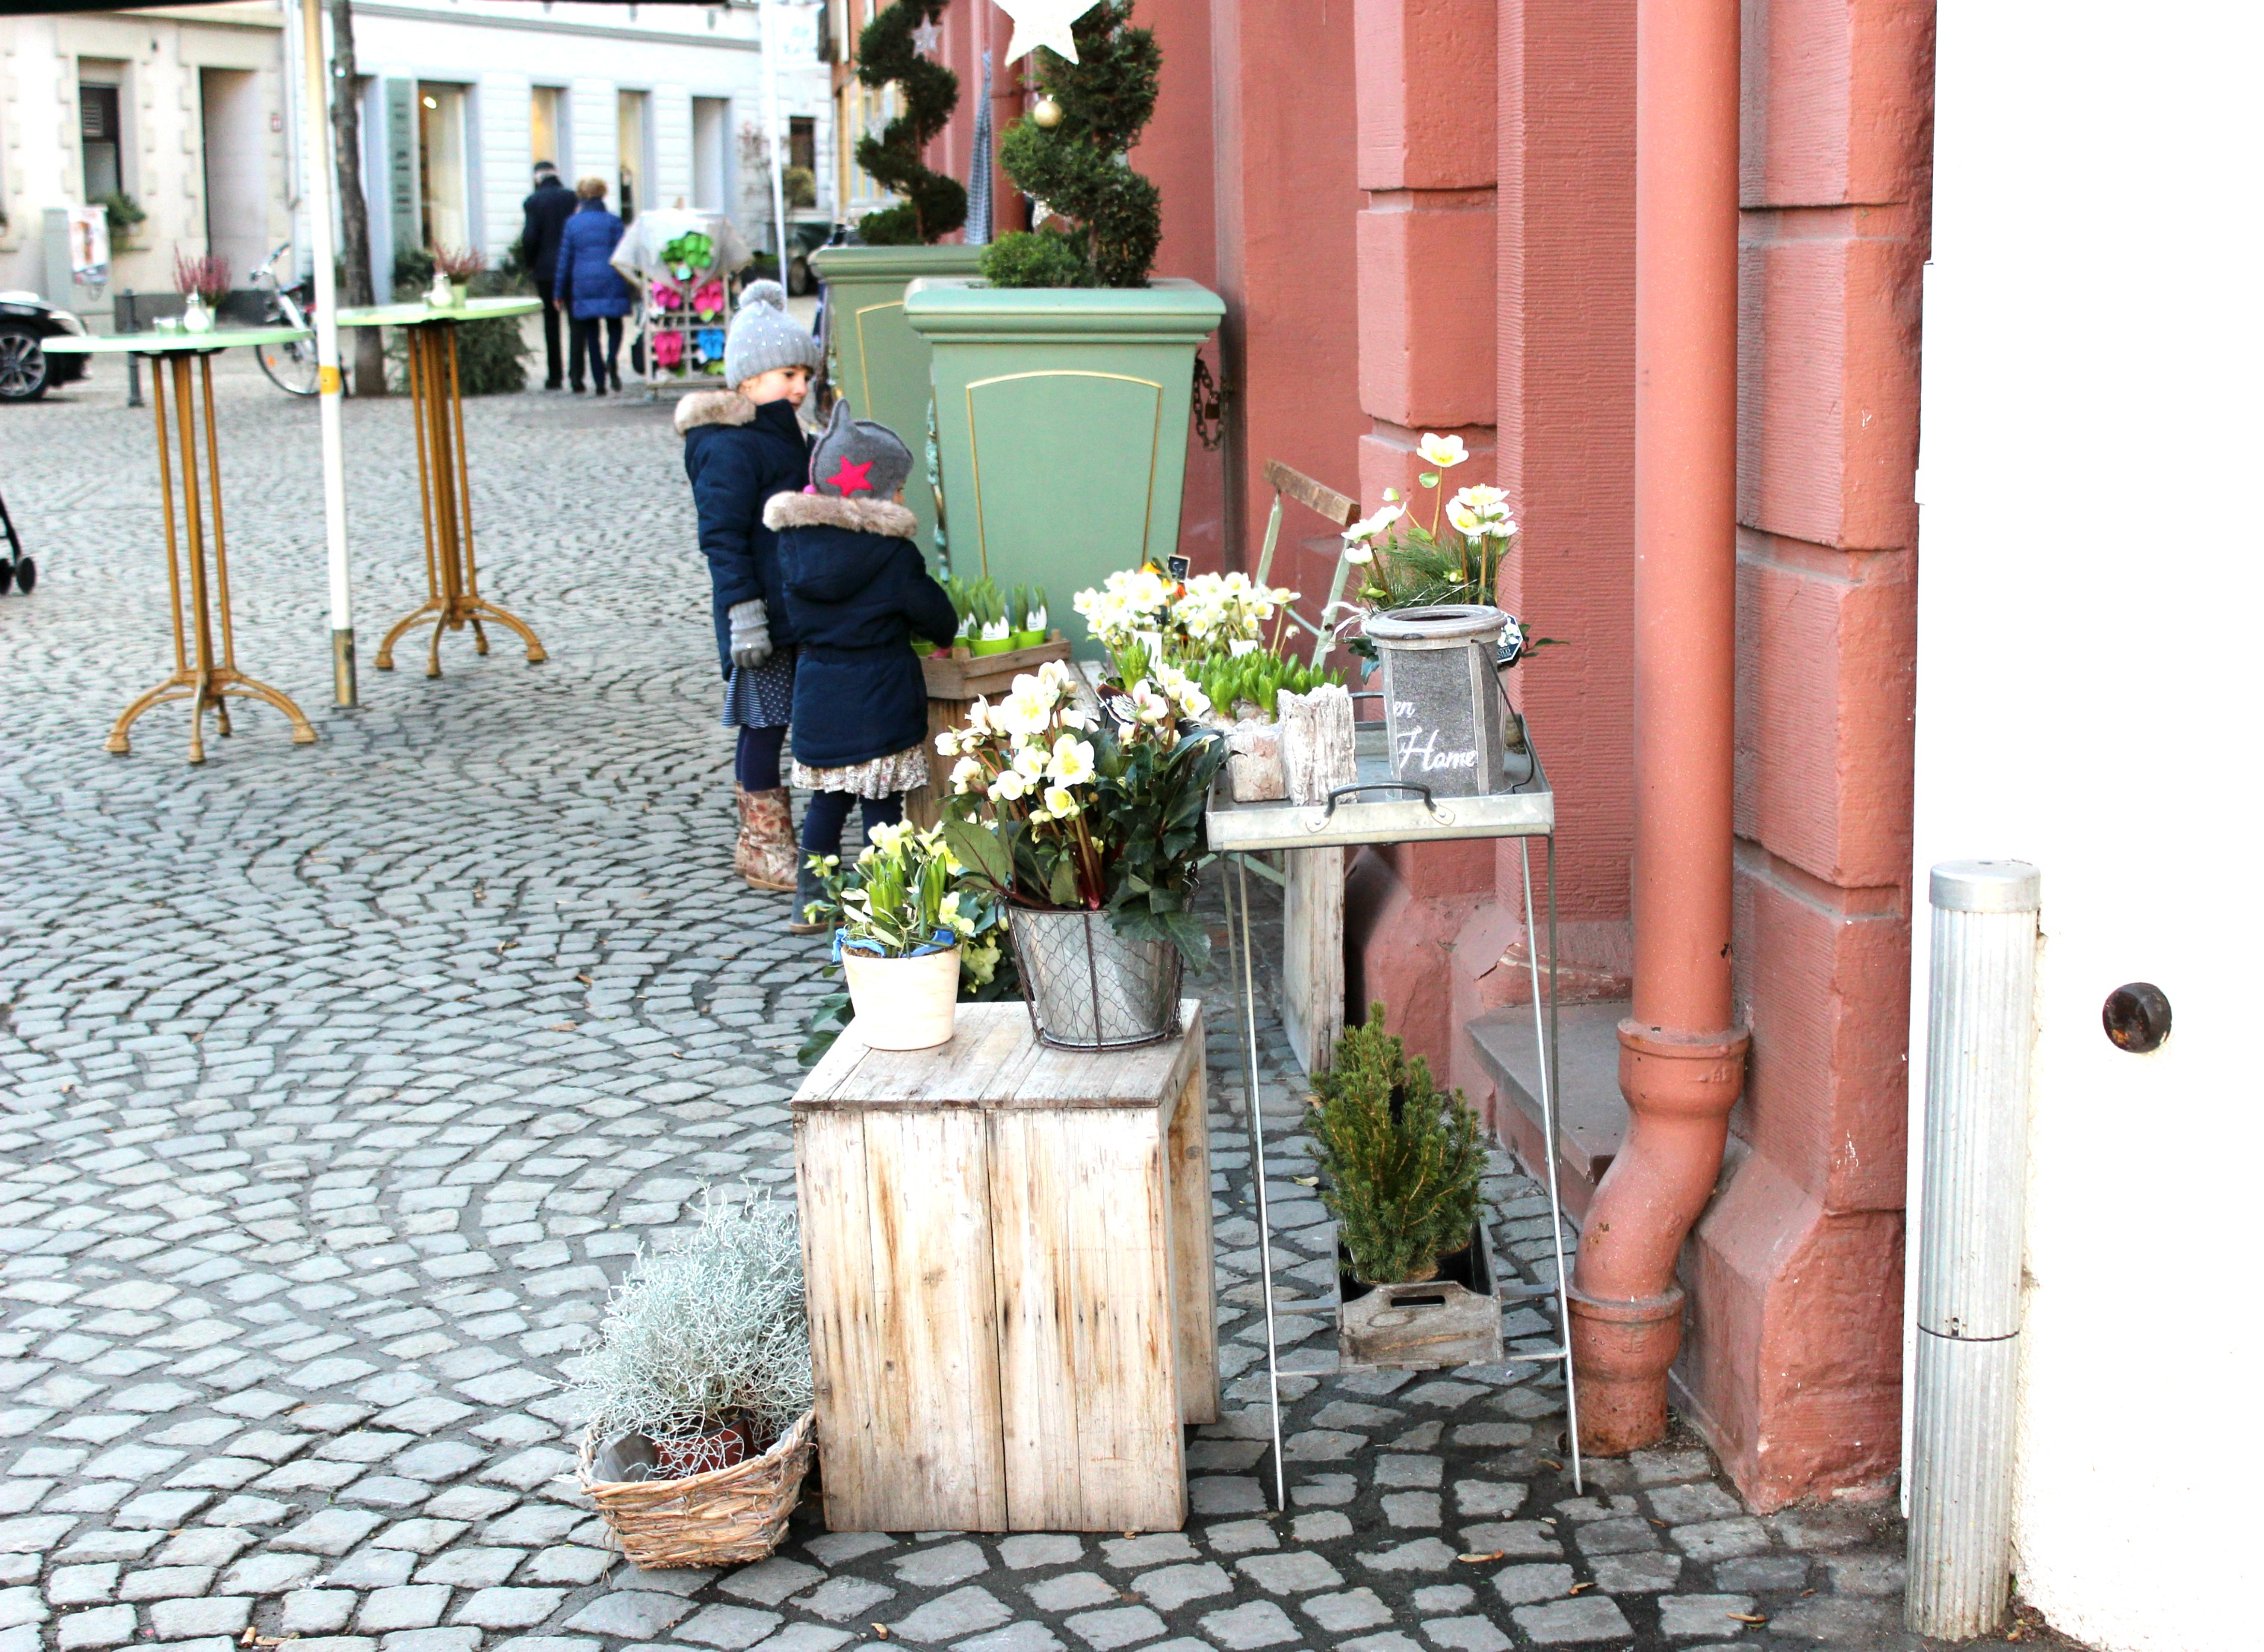 shopping-winterferien-blumen